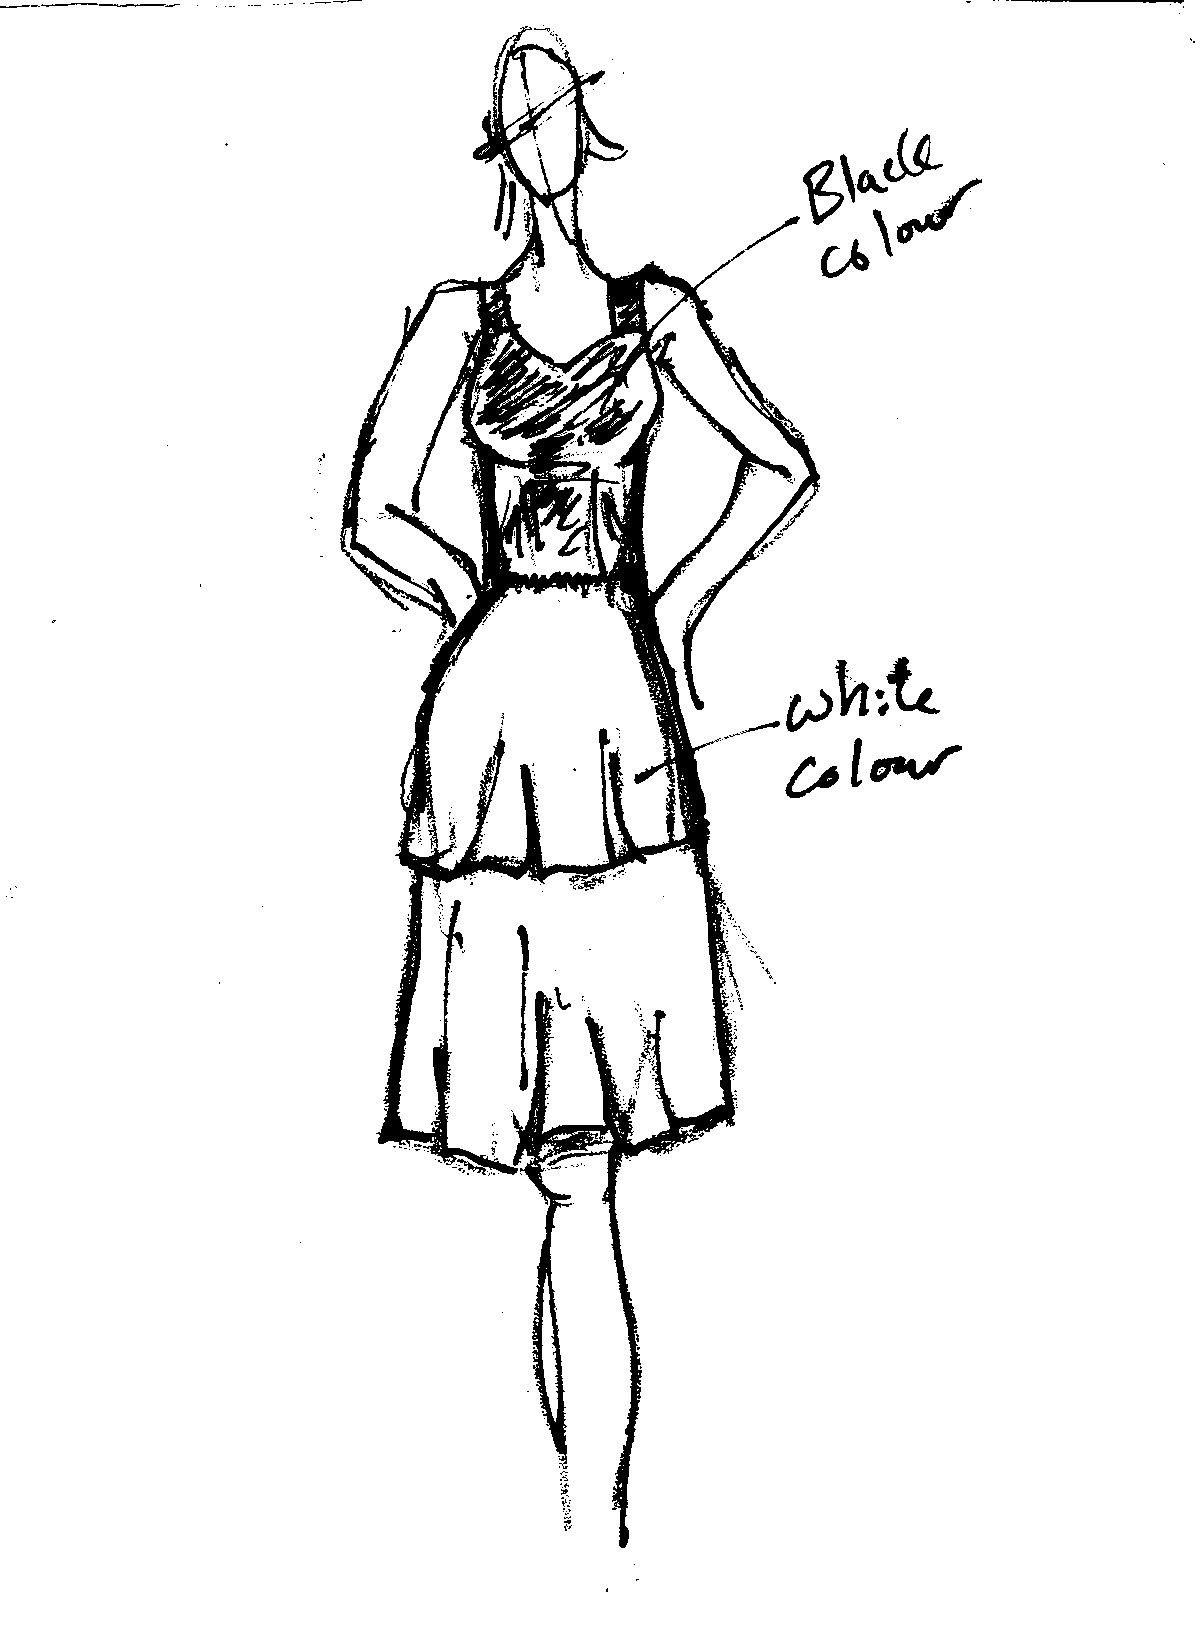 singapore plus size online shop selena peplum dress in black and white raw sketches